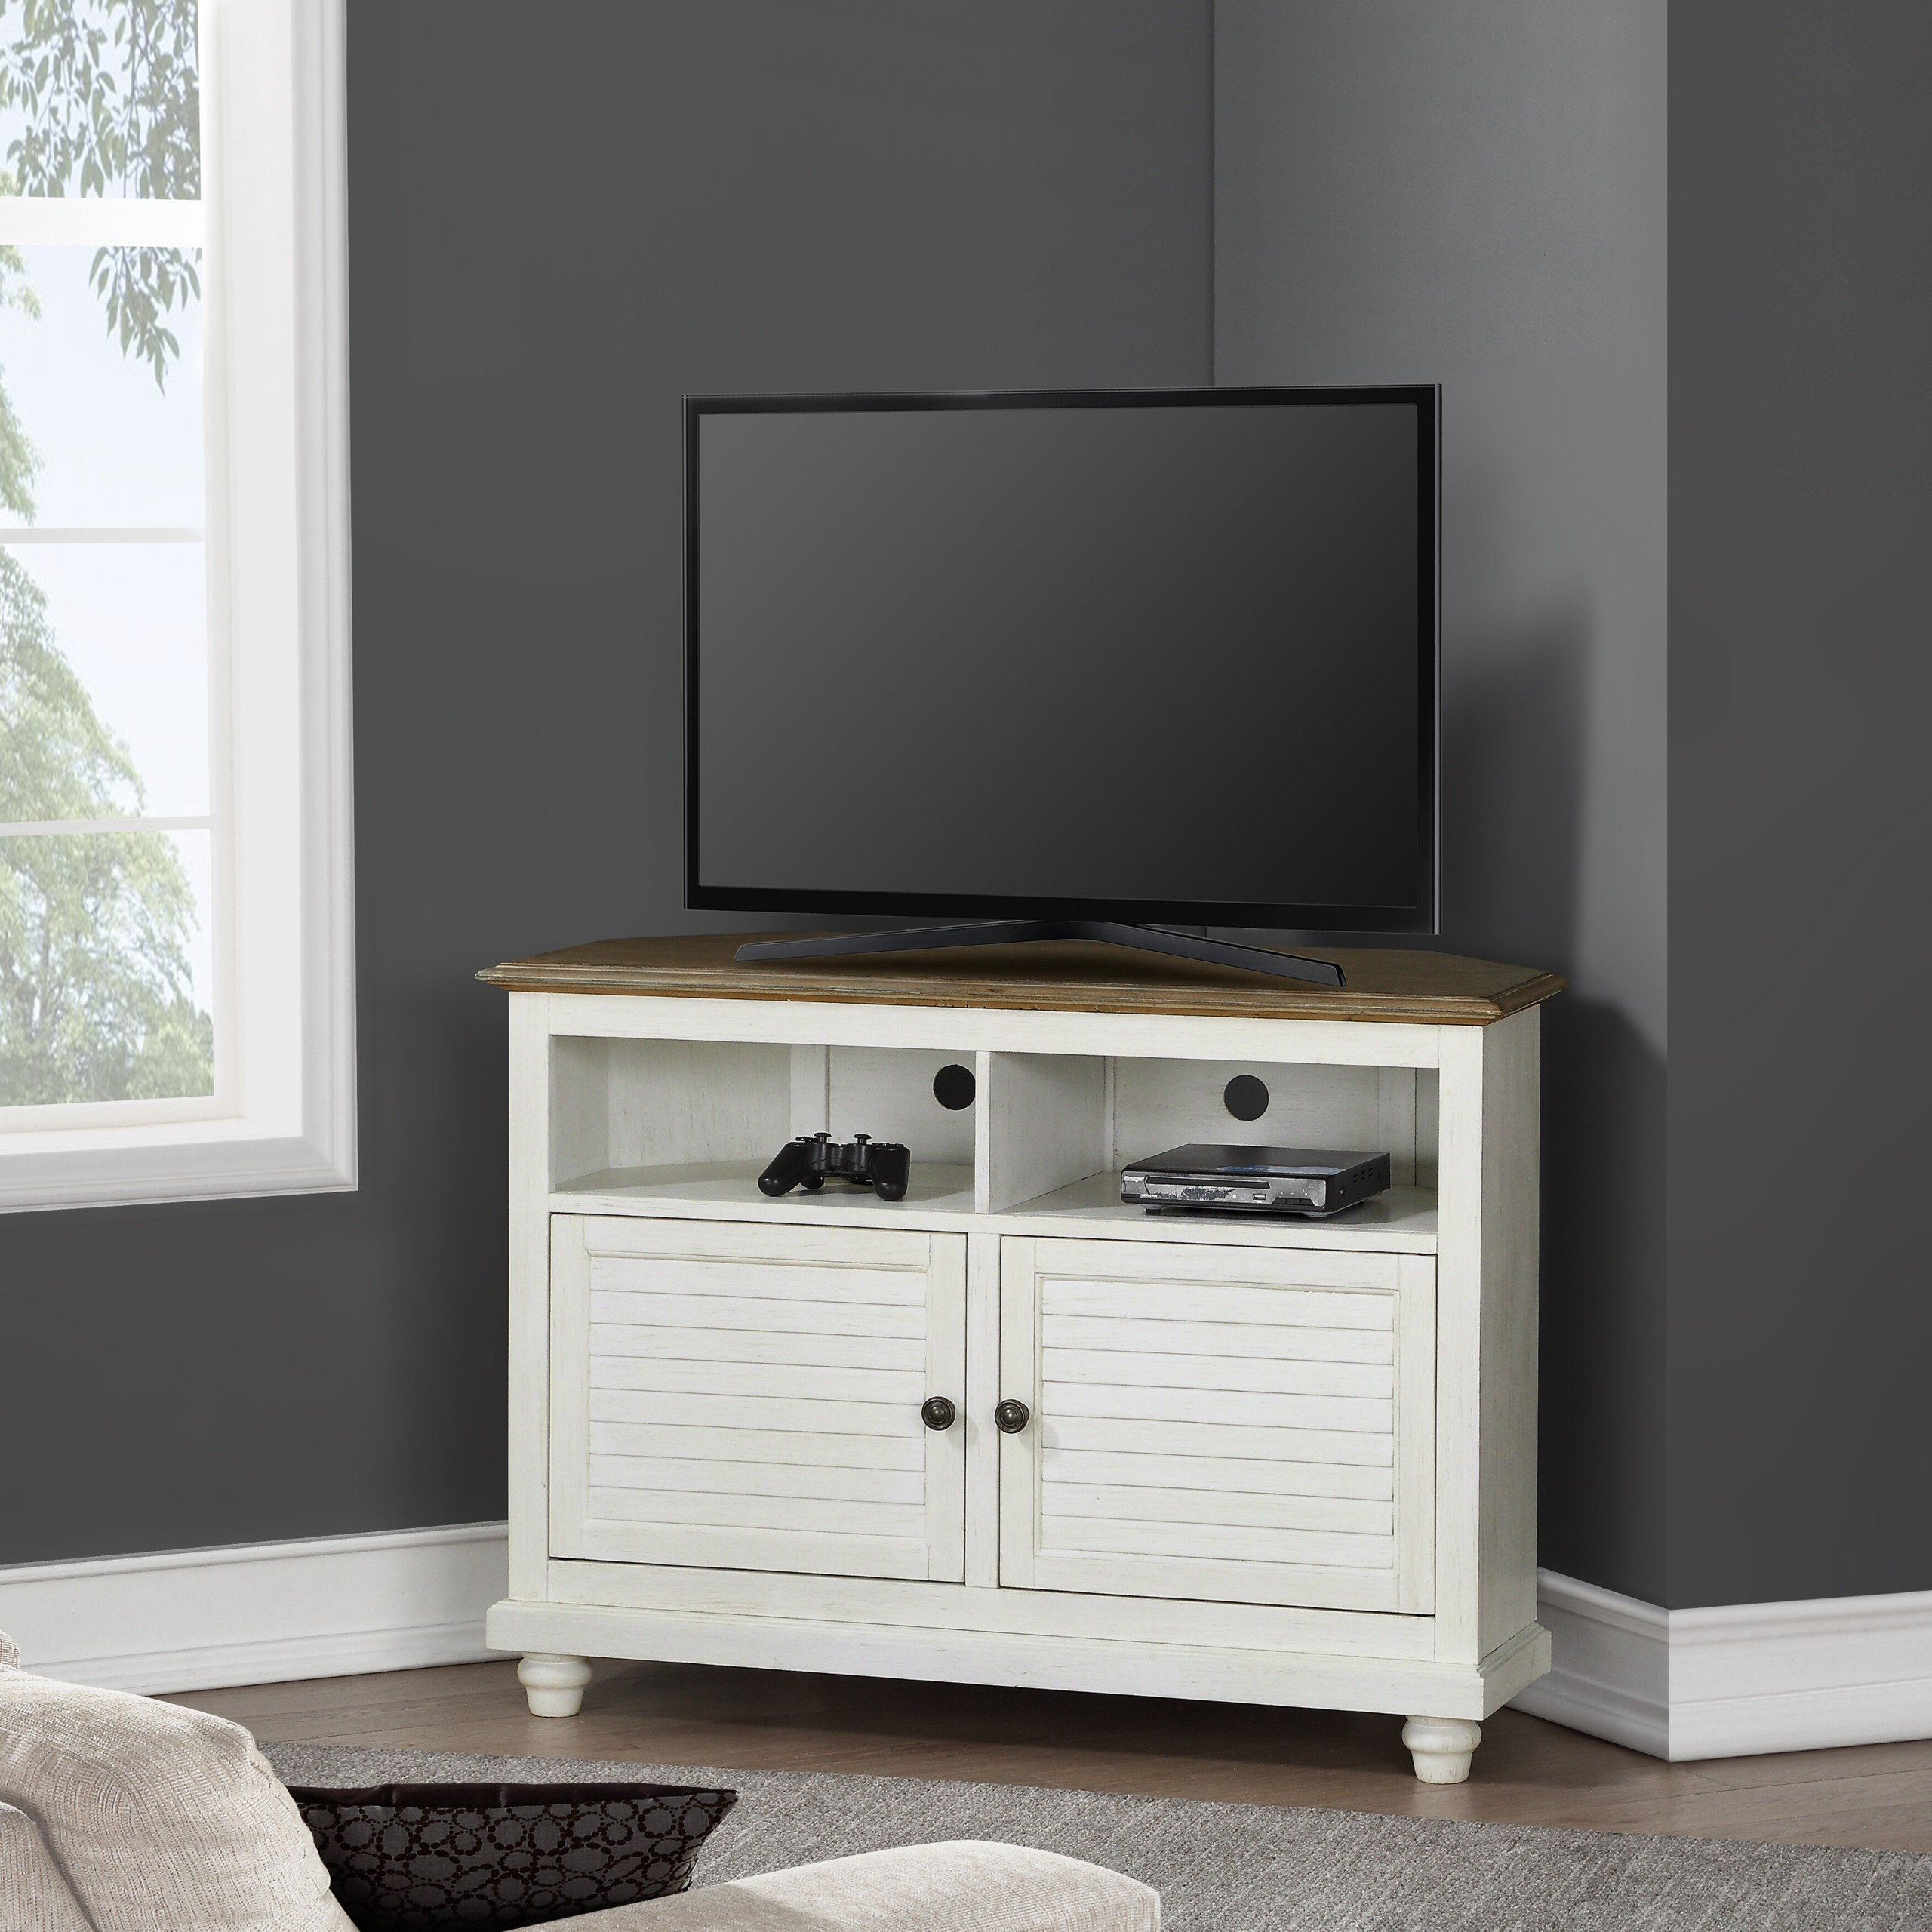 Macdonald Corner TV Stand for TVs up to 50 inches